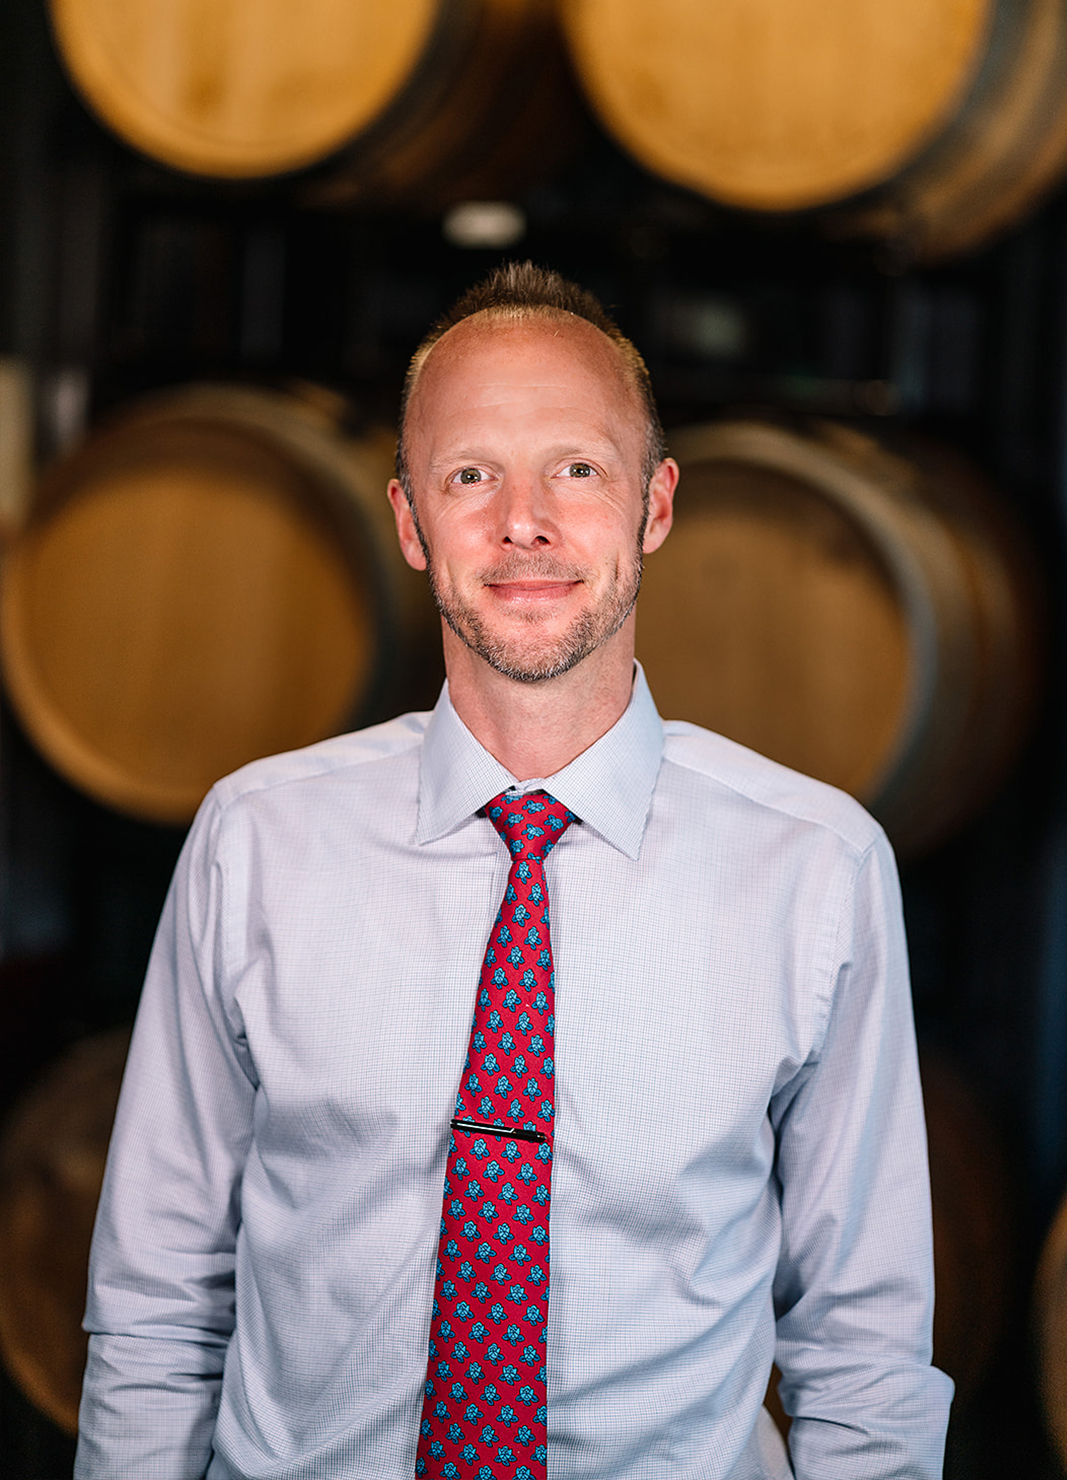 Carboy Wine Operations Director, Jason Snopkoski, standing in front of wine barrels